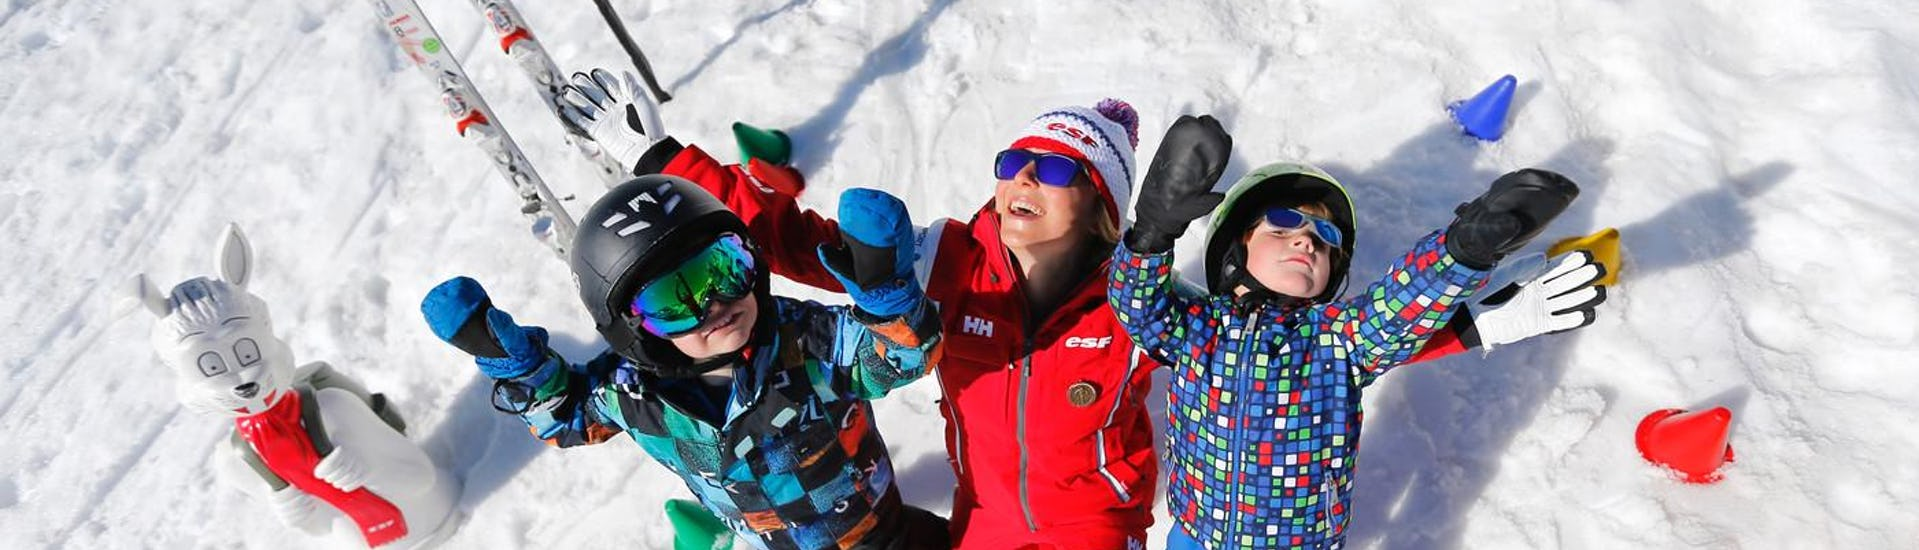 "Children are standing in the snow with their arms in the air alongside their ski instructor from the ski school ESF Alpe d'Huez during their Kids Ski Lessons ""Club Piou-Piou"" (from 5 years) - February."